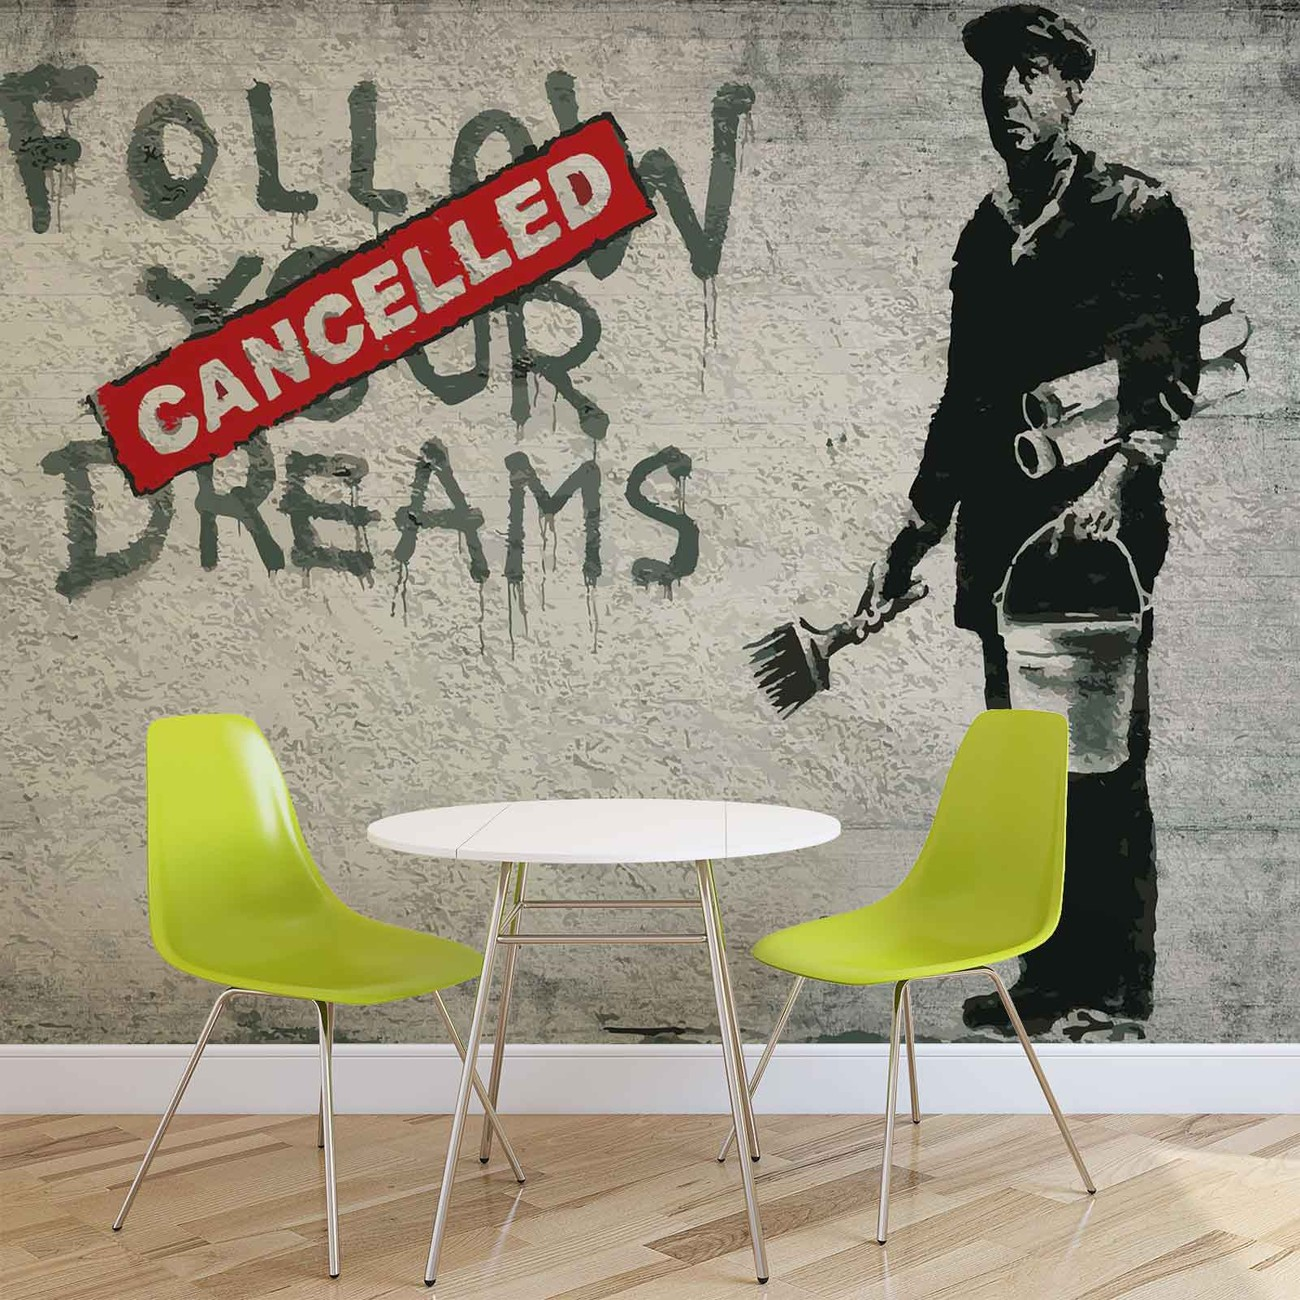 essays banksy Guerilla street artist banksy has livened up the new basquiat exhibition in london with some choice murals outside but is it an homage or infringement.